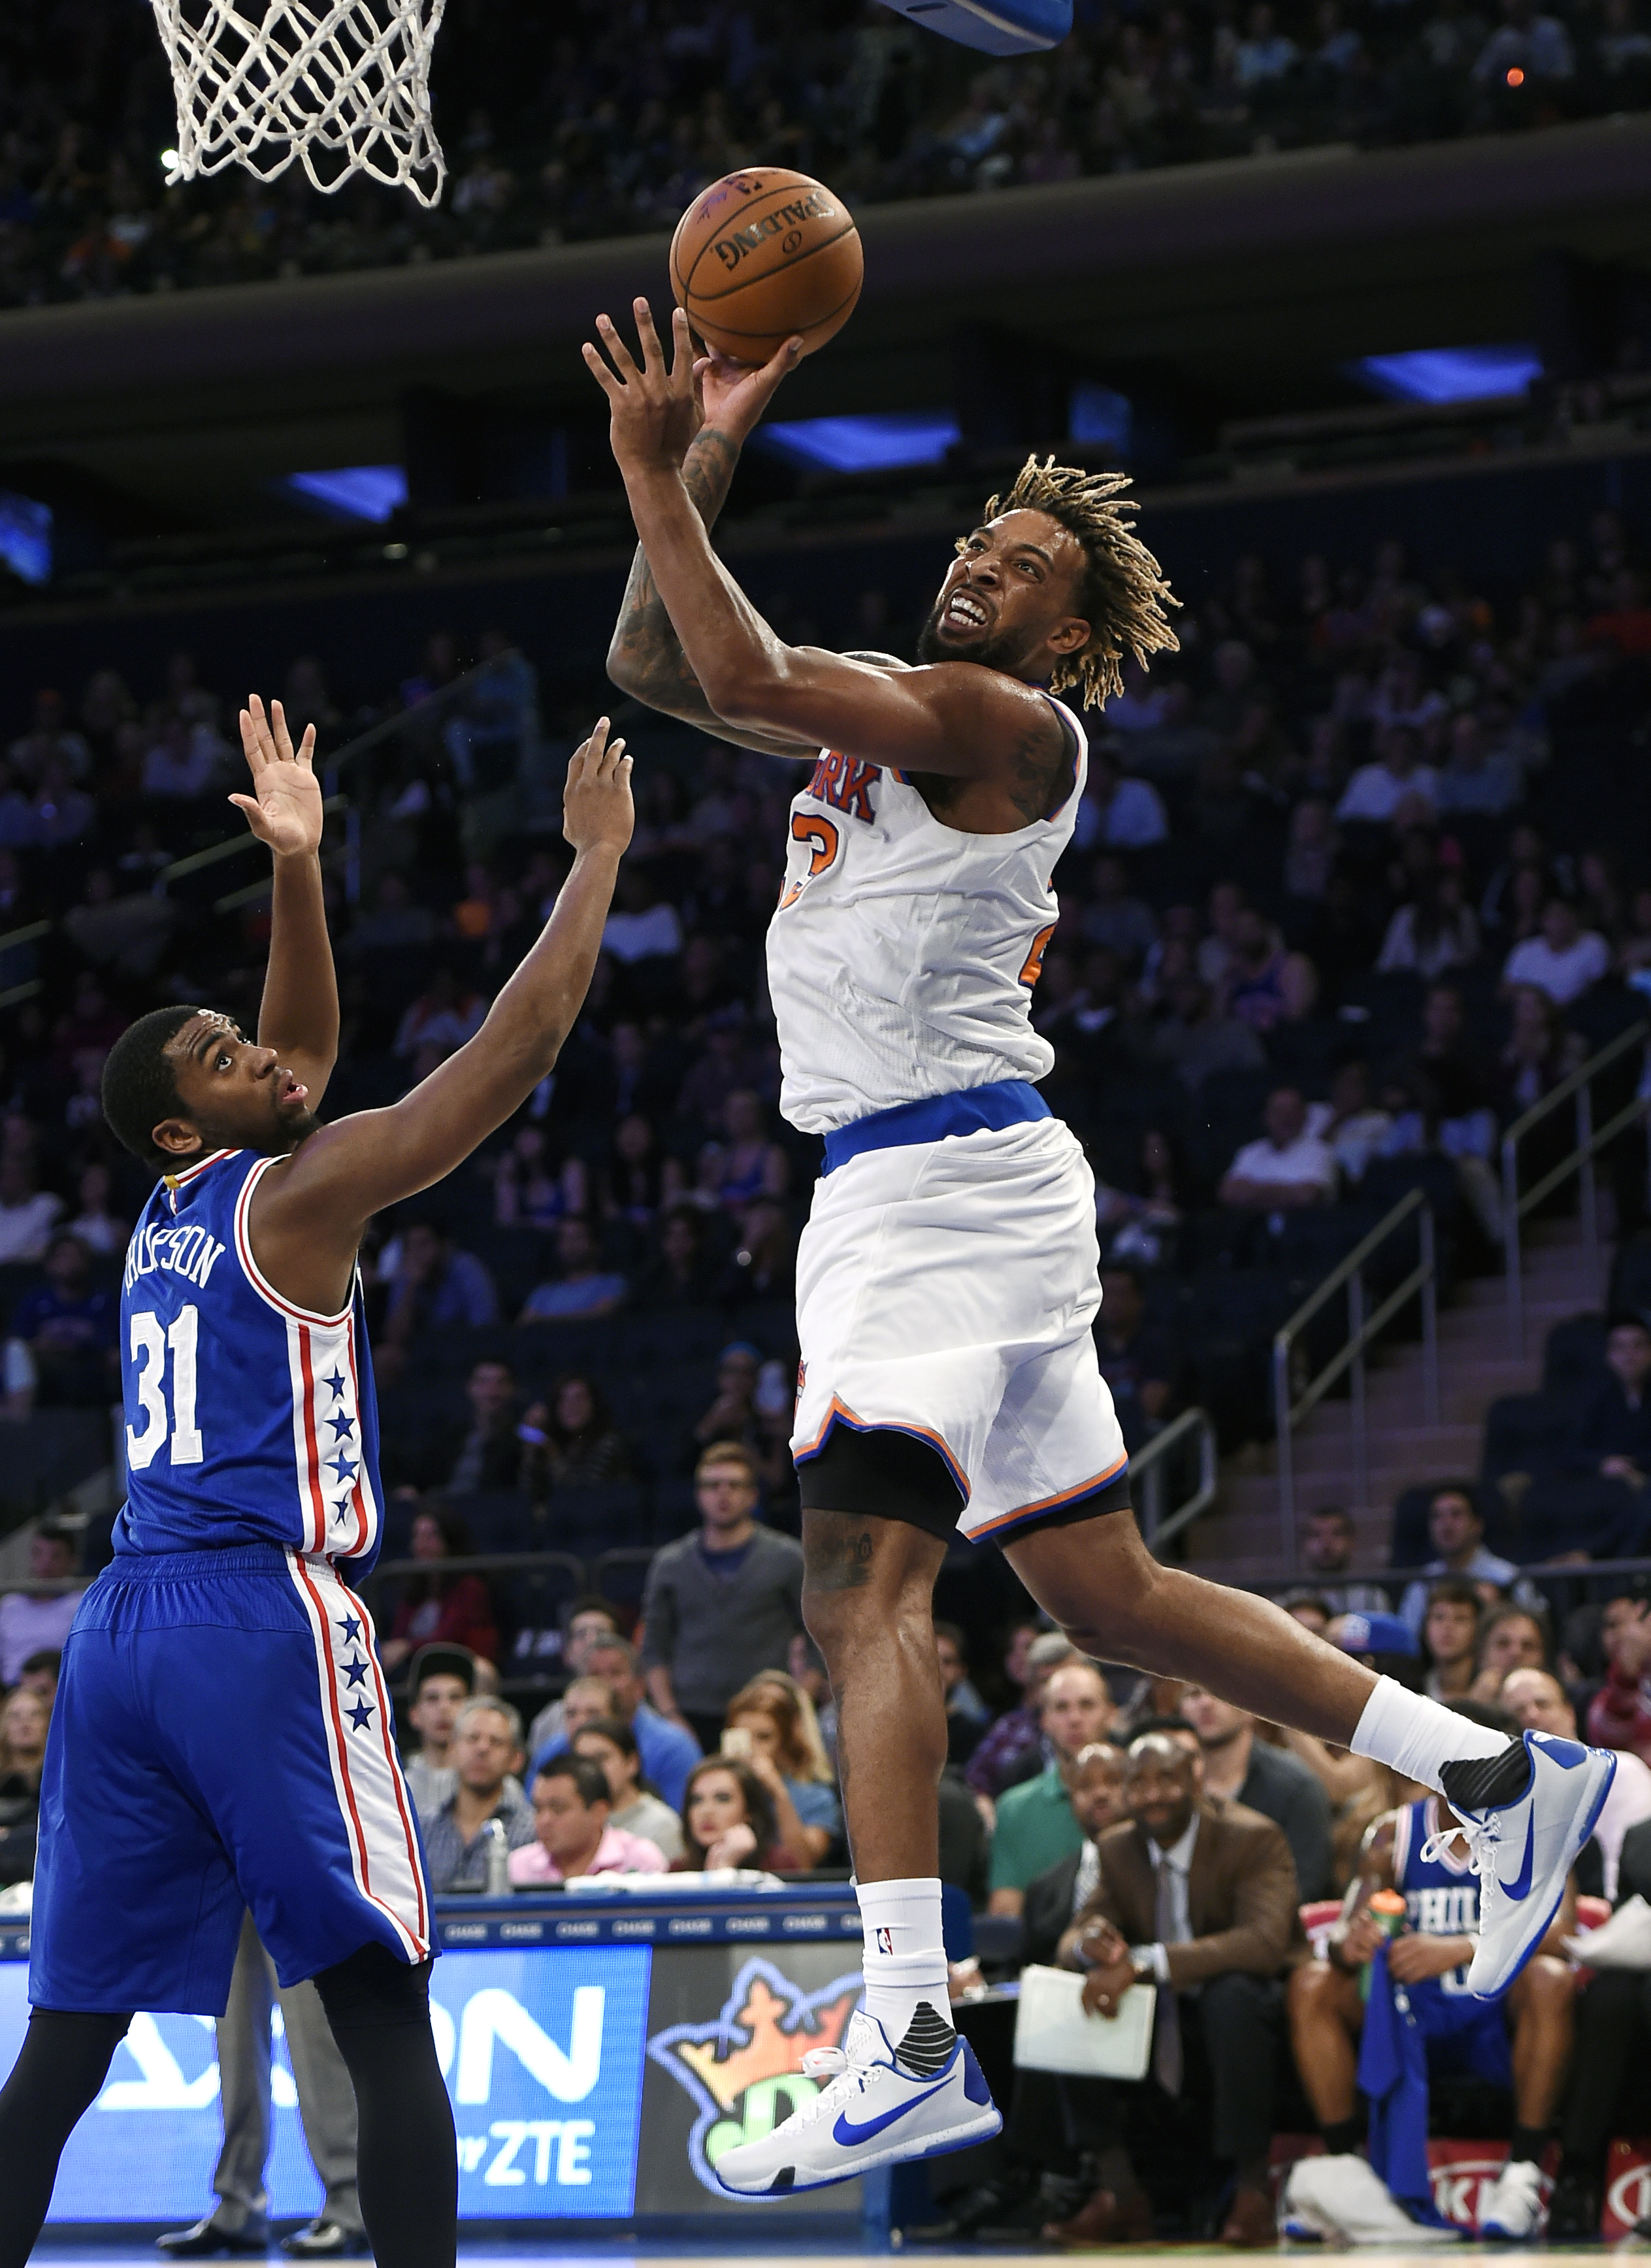 New York Knicks forward Derrick Williams (23) takes aim for the basket over Philadelphia 76ers guard Hollis Thompson (31) during the second half of a preseason NBA basketball game on Monday, Oct. 12, 2015, in New York. The Knicks won 94-88. (AP Photo/Kath